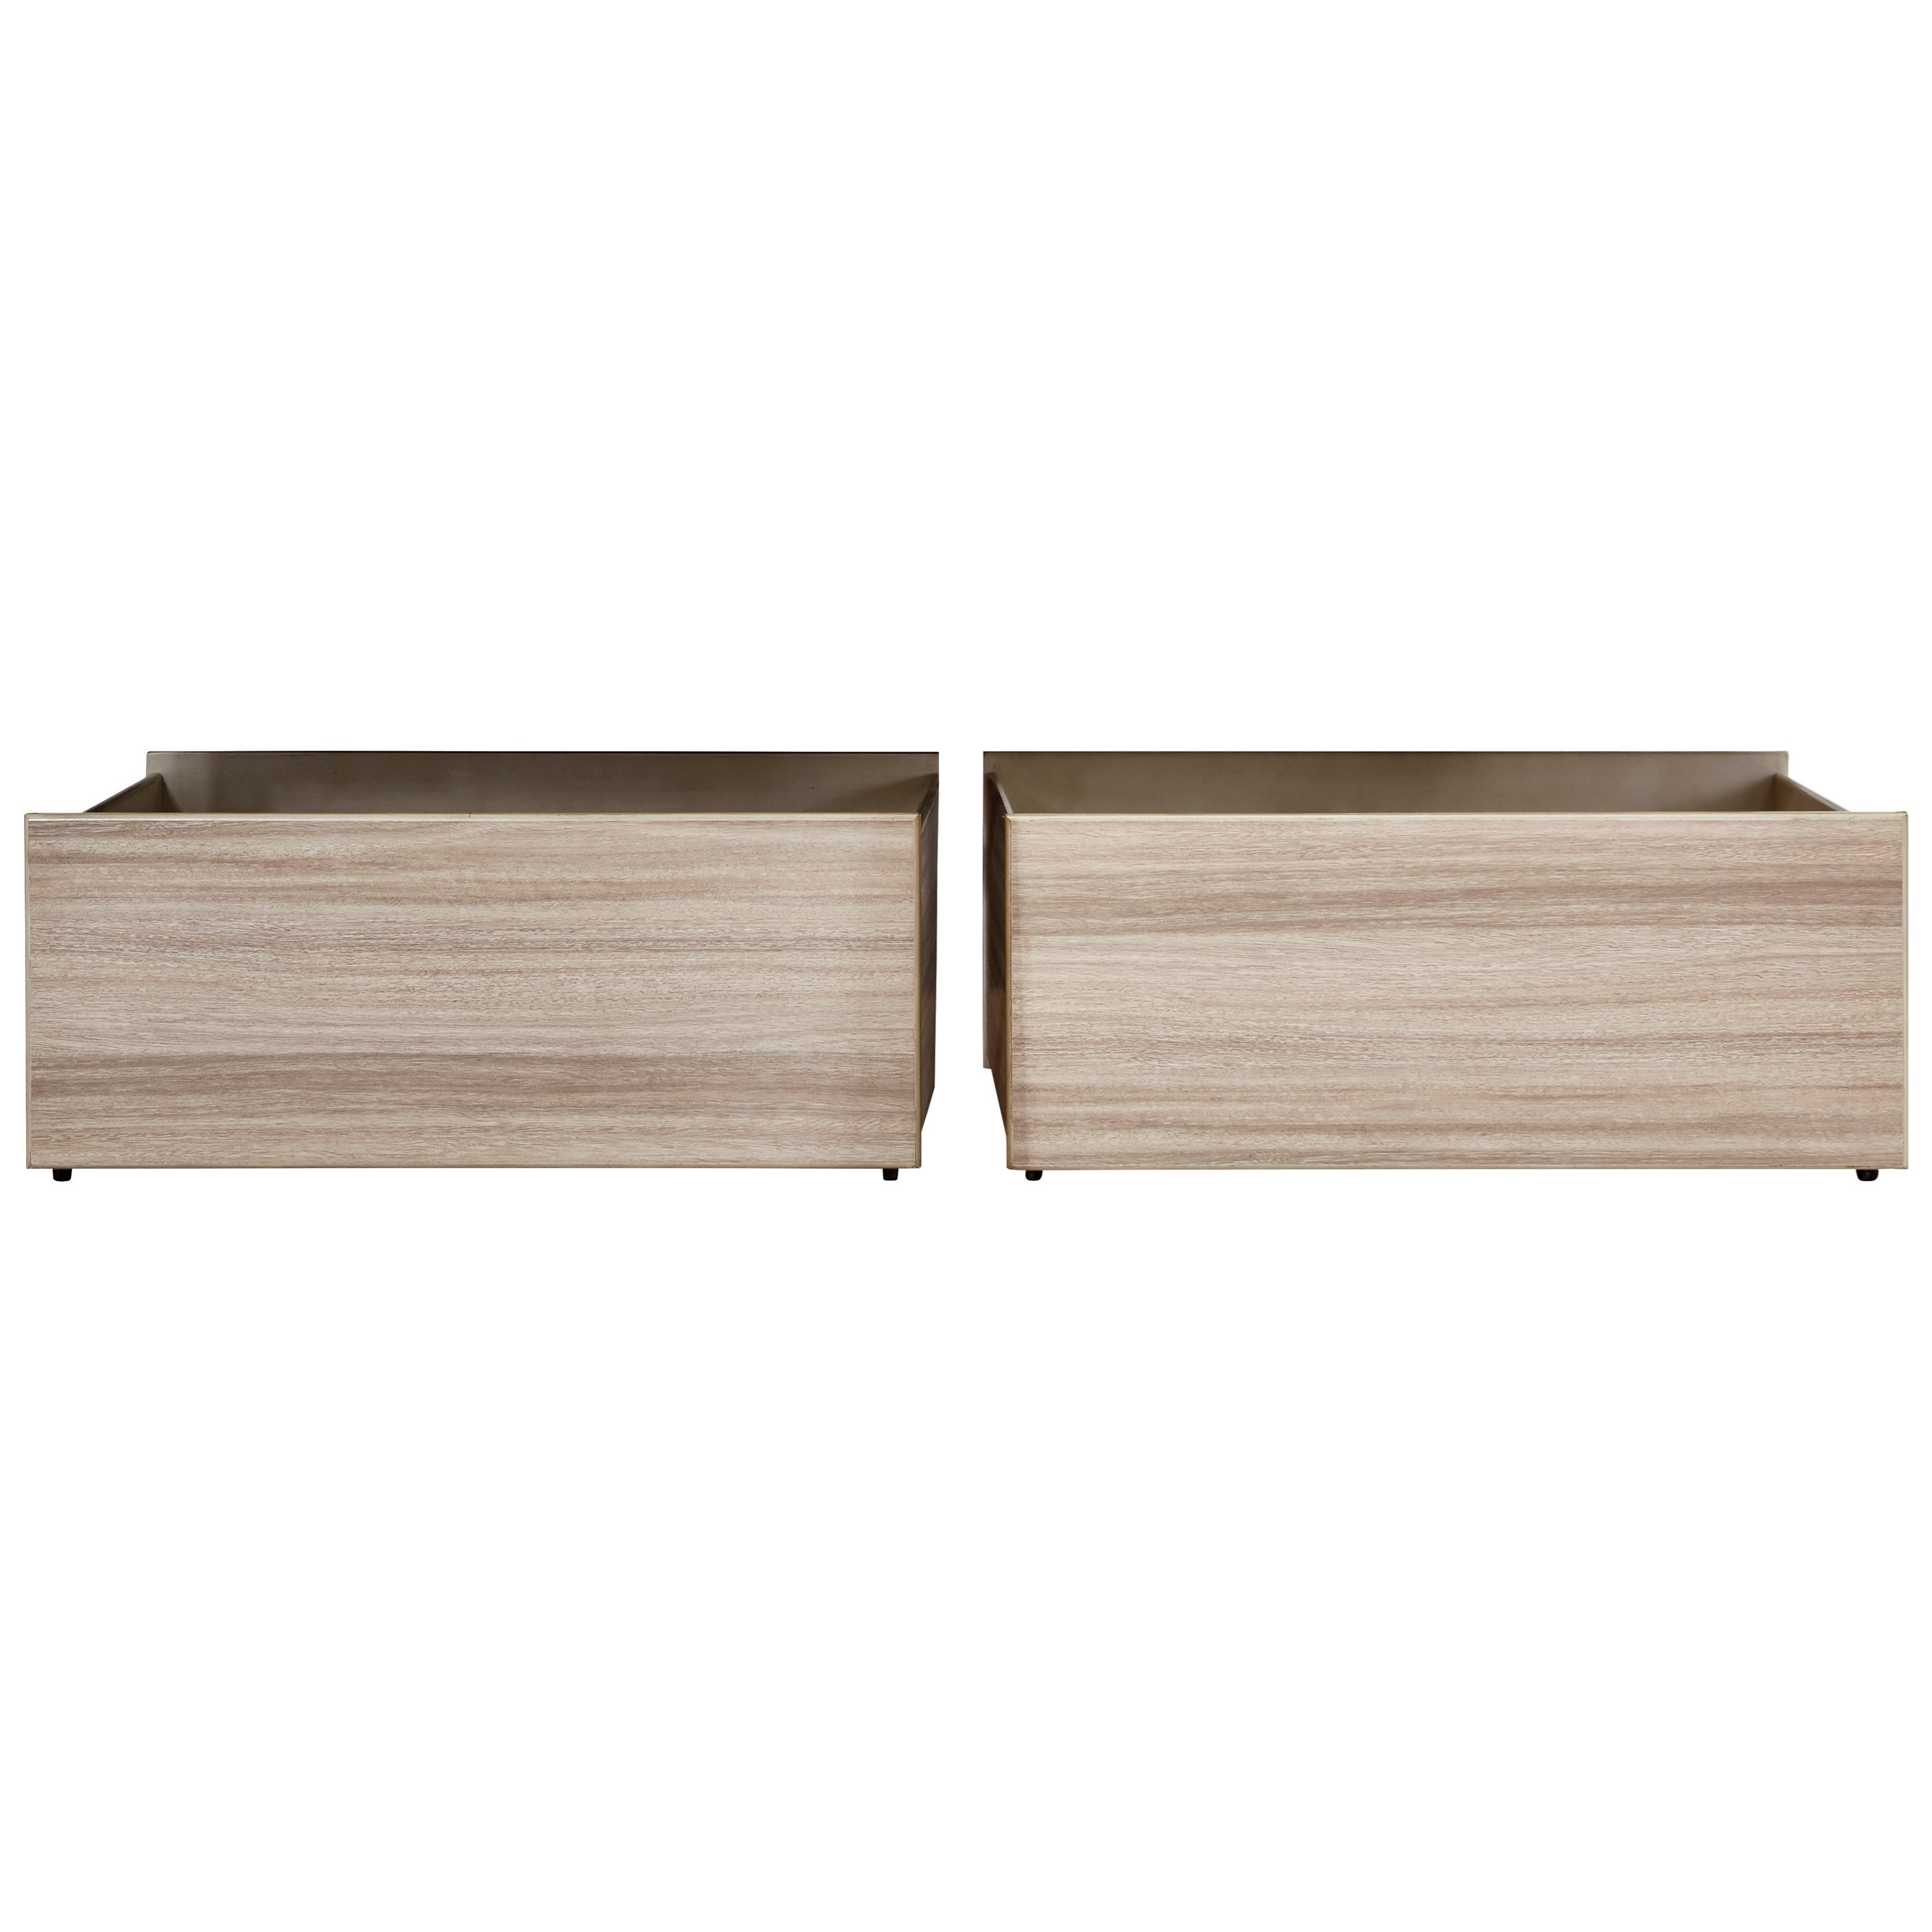 Wrenalyn Set of 2 Under Bed Storage Boxes by Ashley (Signature Design) at Johnny Janosik